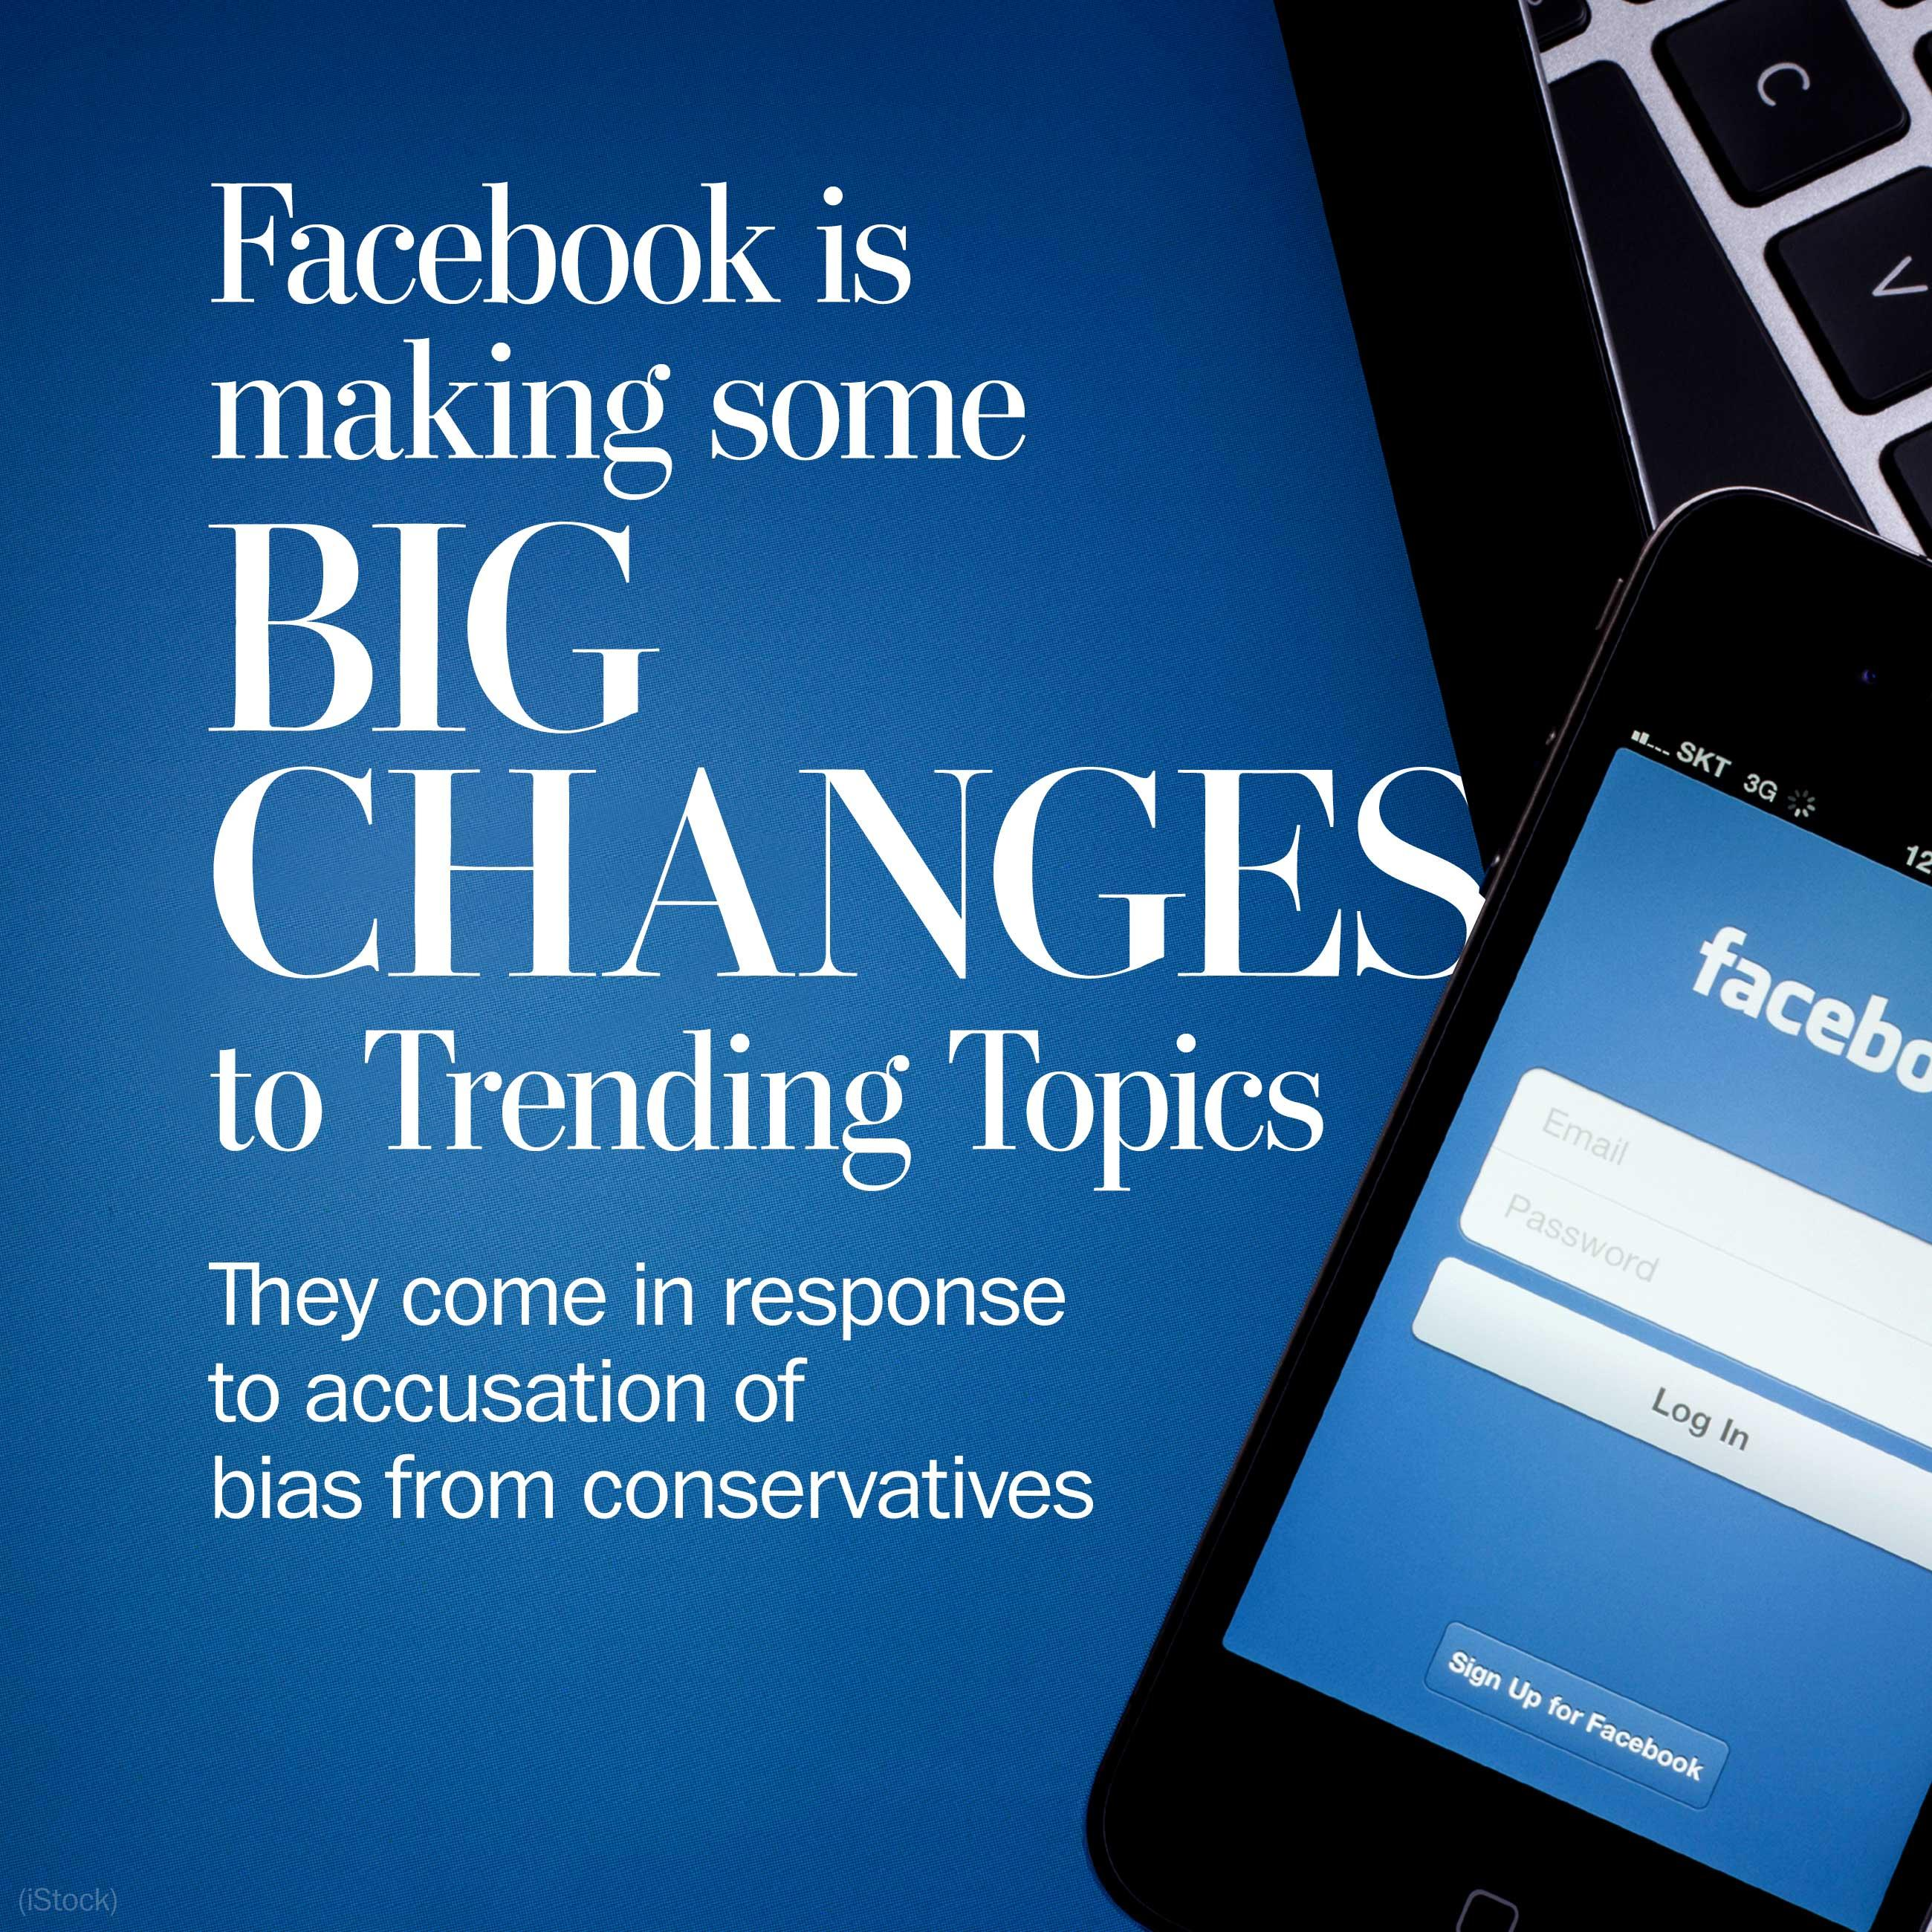 Facebook is making some big changes to Trending Topics, responding to conservatives